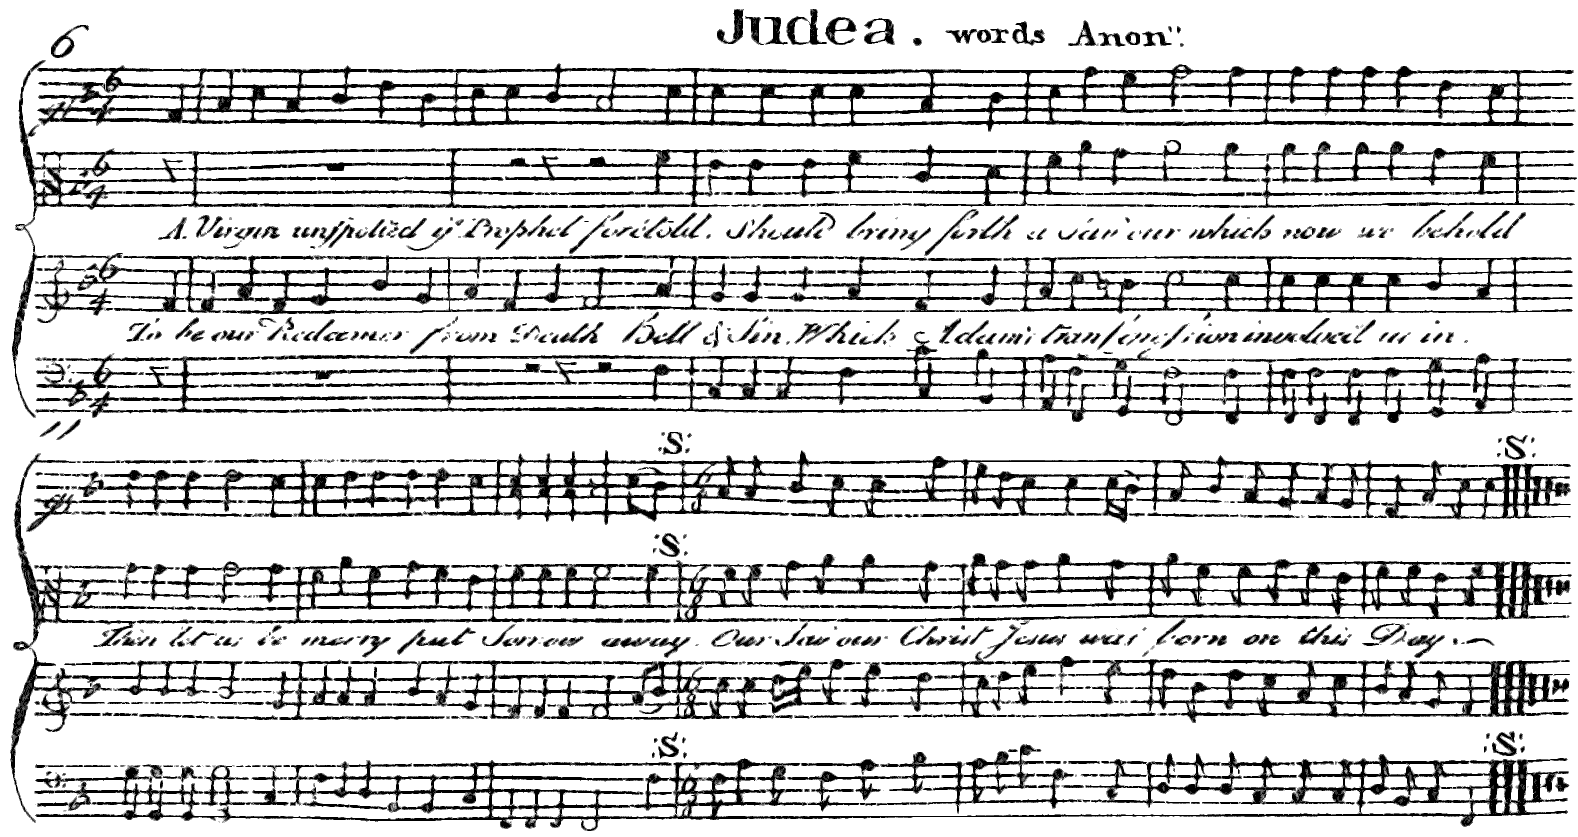 A facsimile of William Billings' Judea as published in The Singing Master's Assistant, published in 1778 in Boston.